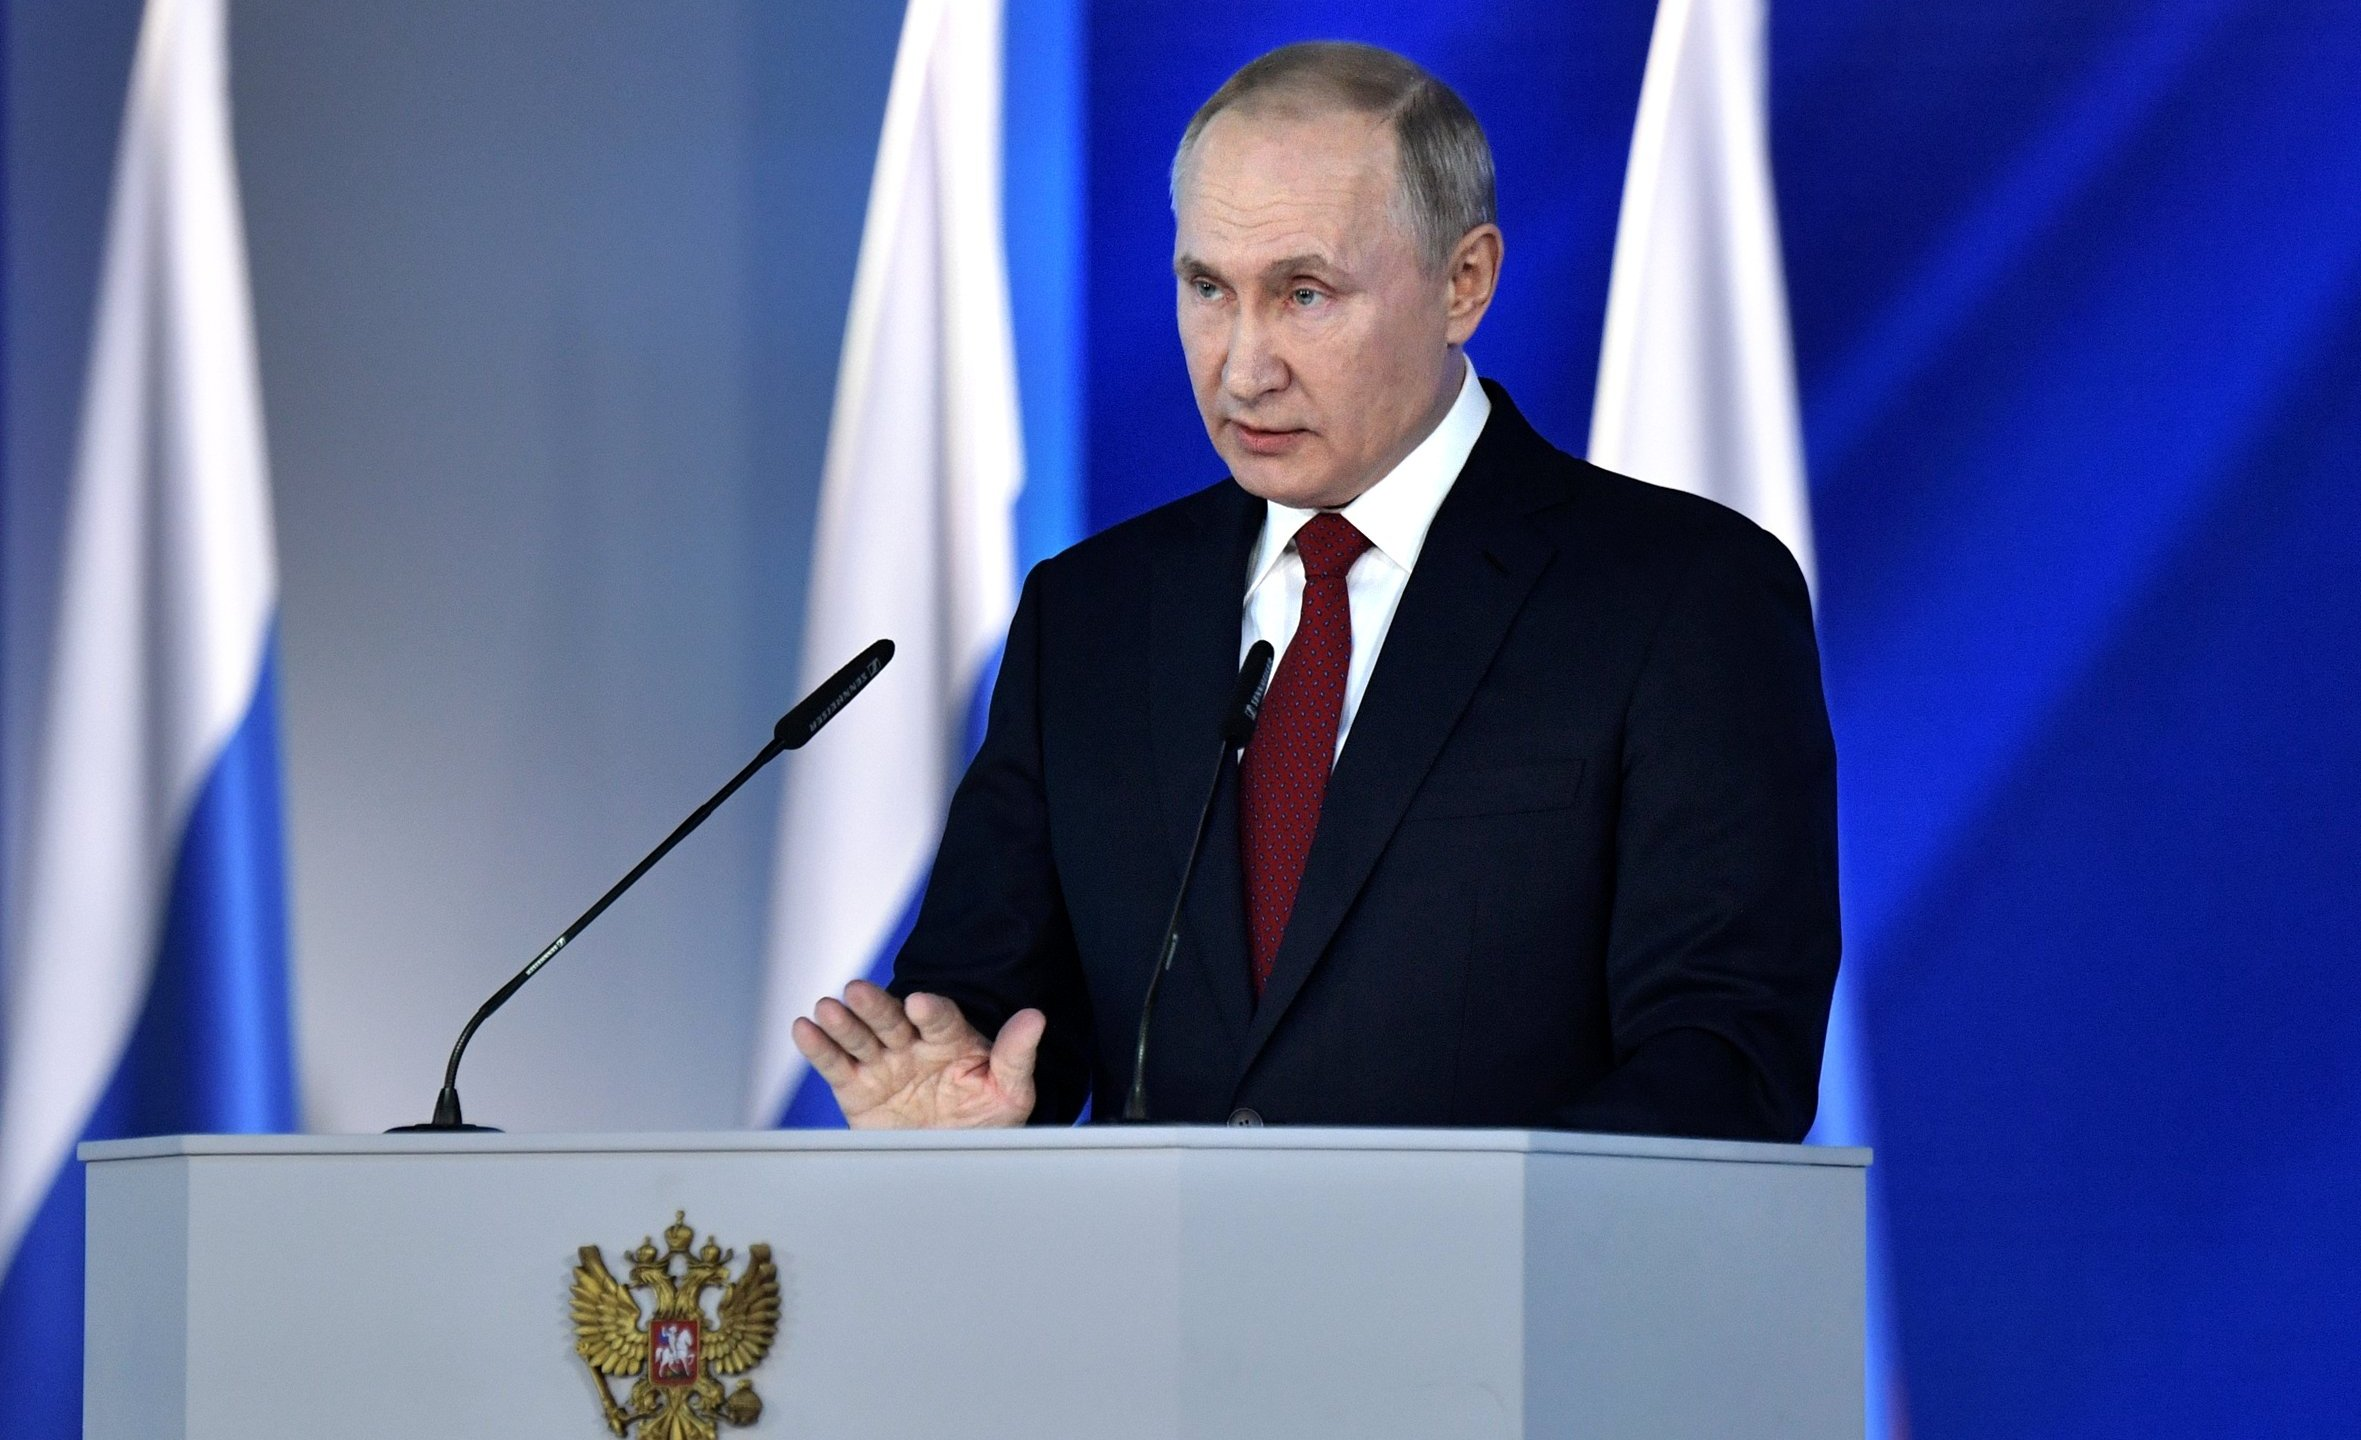 Russian President Vladimir Putin addresses the Federal Assembly at the Manezh exhibition hall in downtown Moscow on Jan. 15, 2020. (Credit: ALEXEY NIKOLSKY/SPUTNIK/AFP via Getty Images)